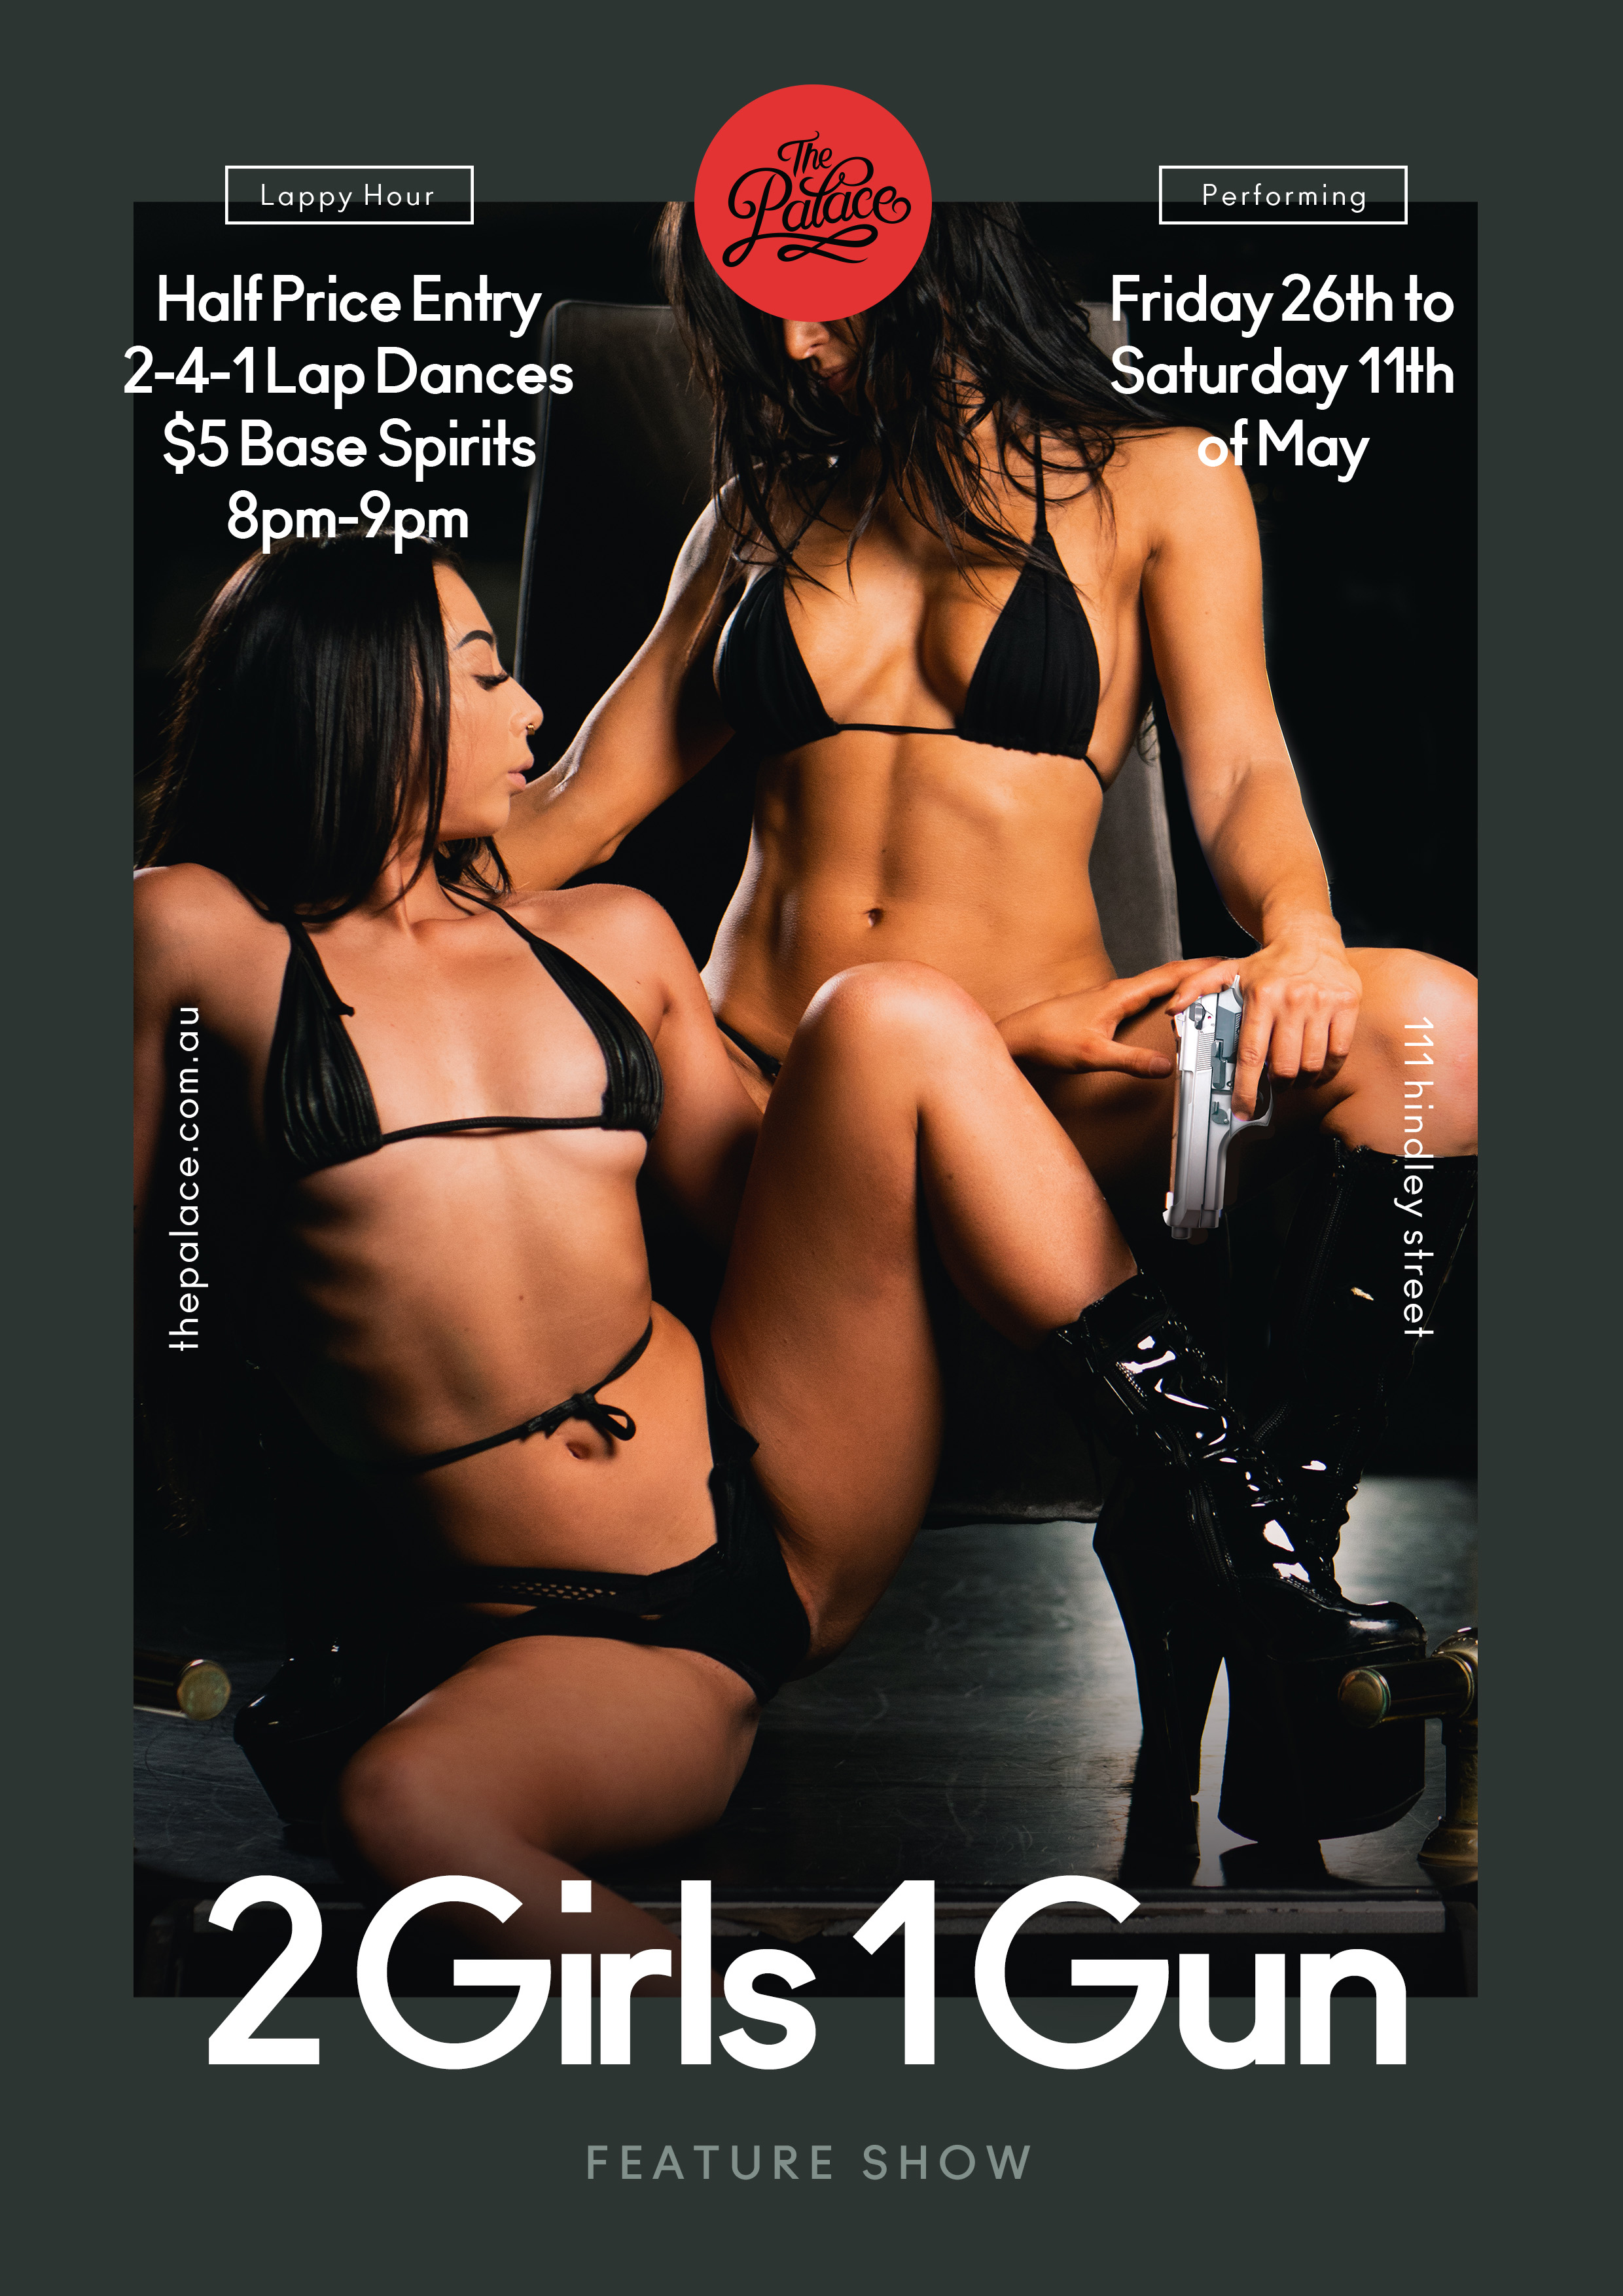 2 Girls 1 Gun - The Palace Adelaide, 111 Hindley St, Adelaide